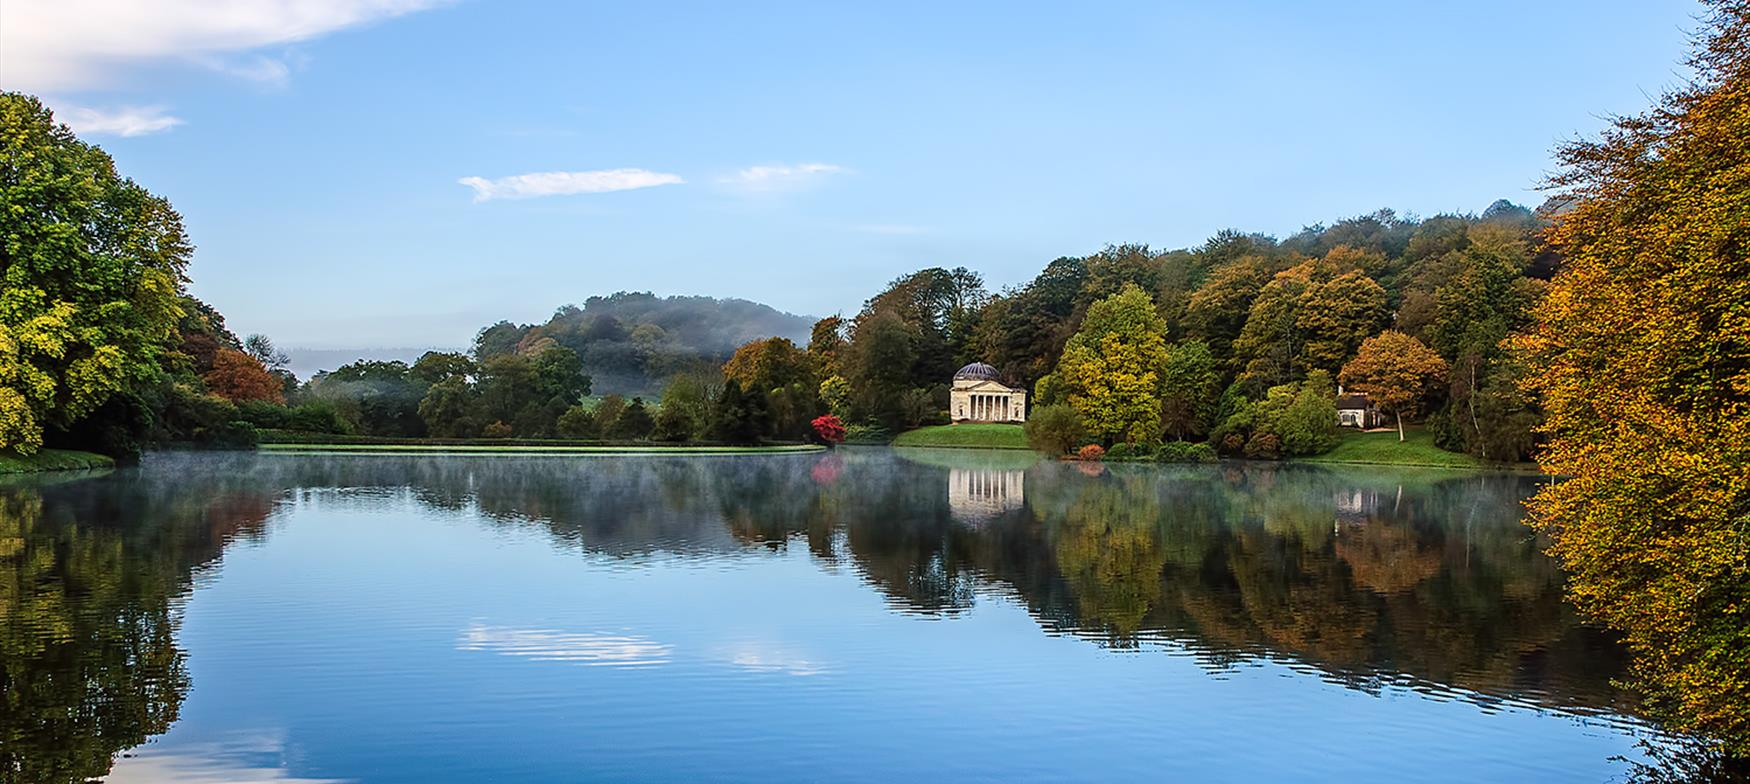 Take in art, history and gardens at Stourhead